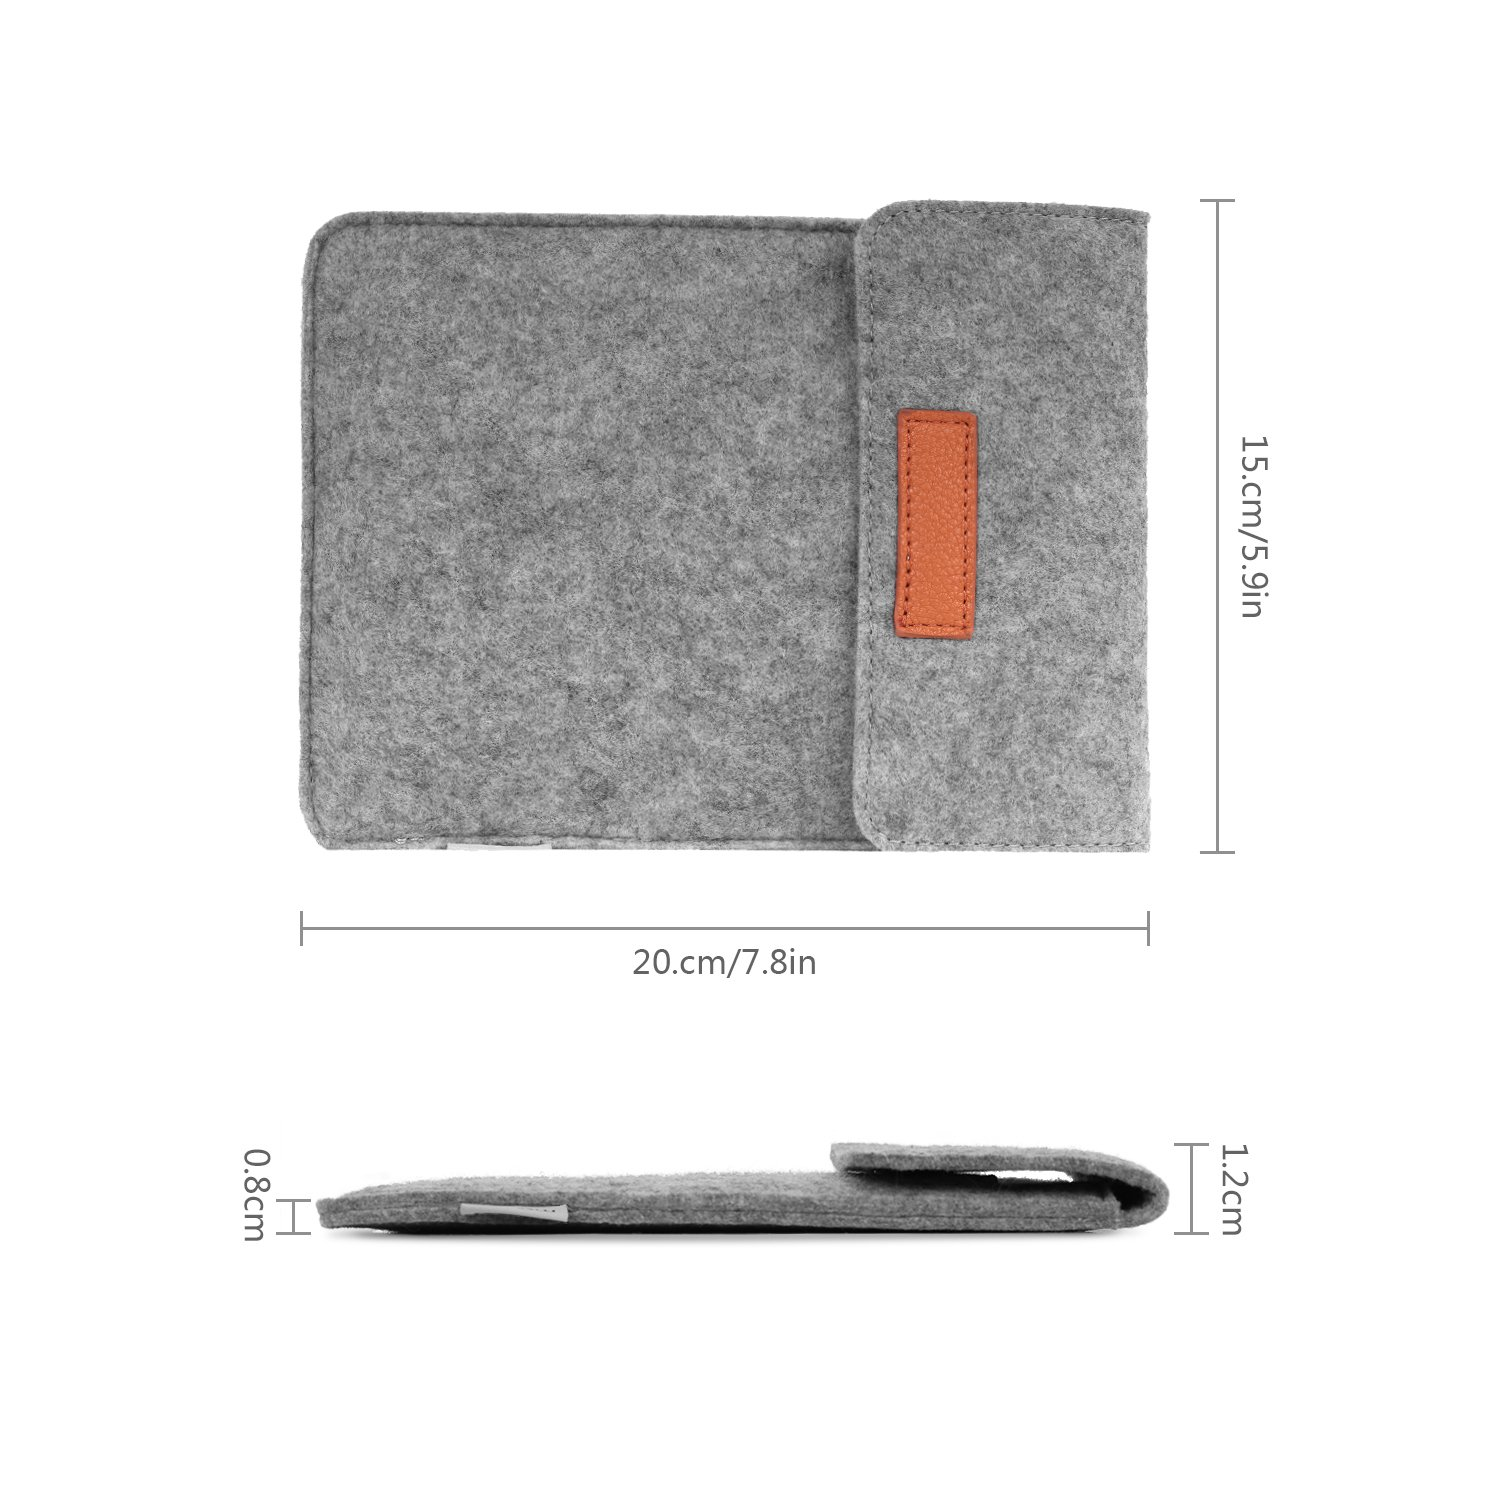 //Kindle Oasis 6 E-Reader 8th Gen Protective Felt Cover Bag for Kindle Voyage//Kindle Light Gray MoKo 6 Inch Kindle Sleeve Case Fits for All-New Kindle 10th Generation 2019//Kindle Paperwhite 2018